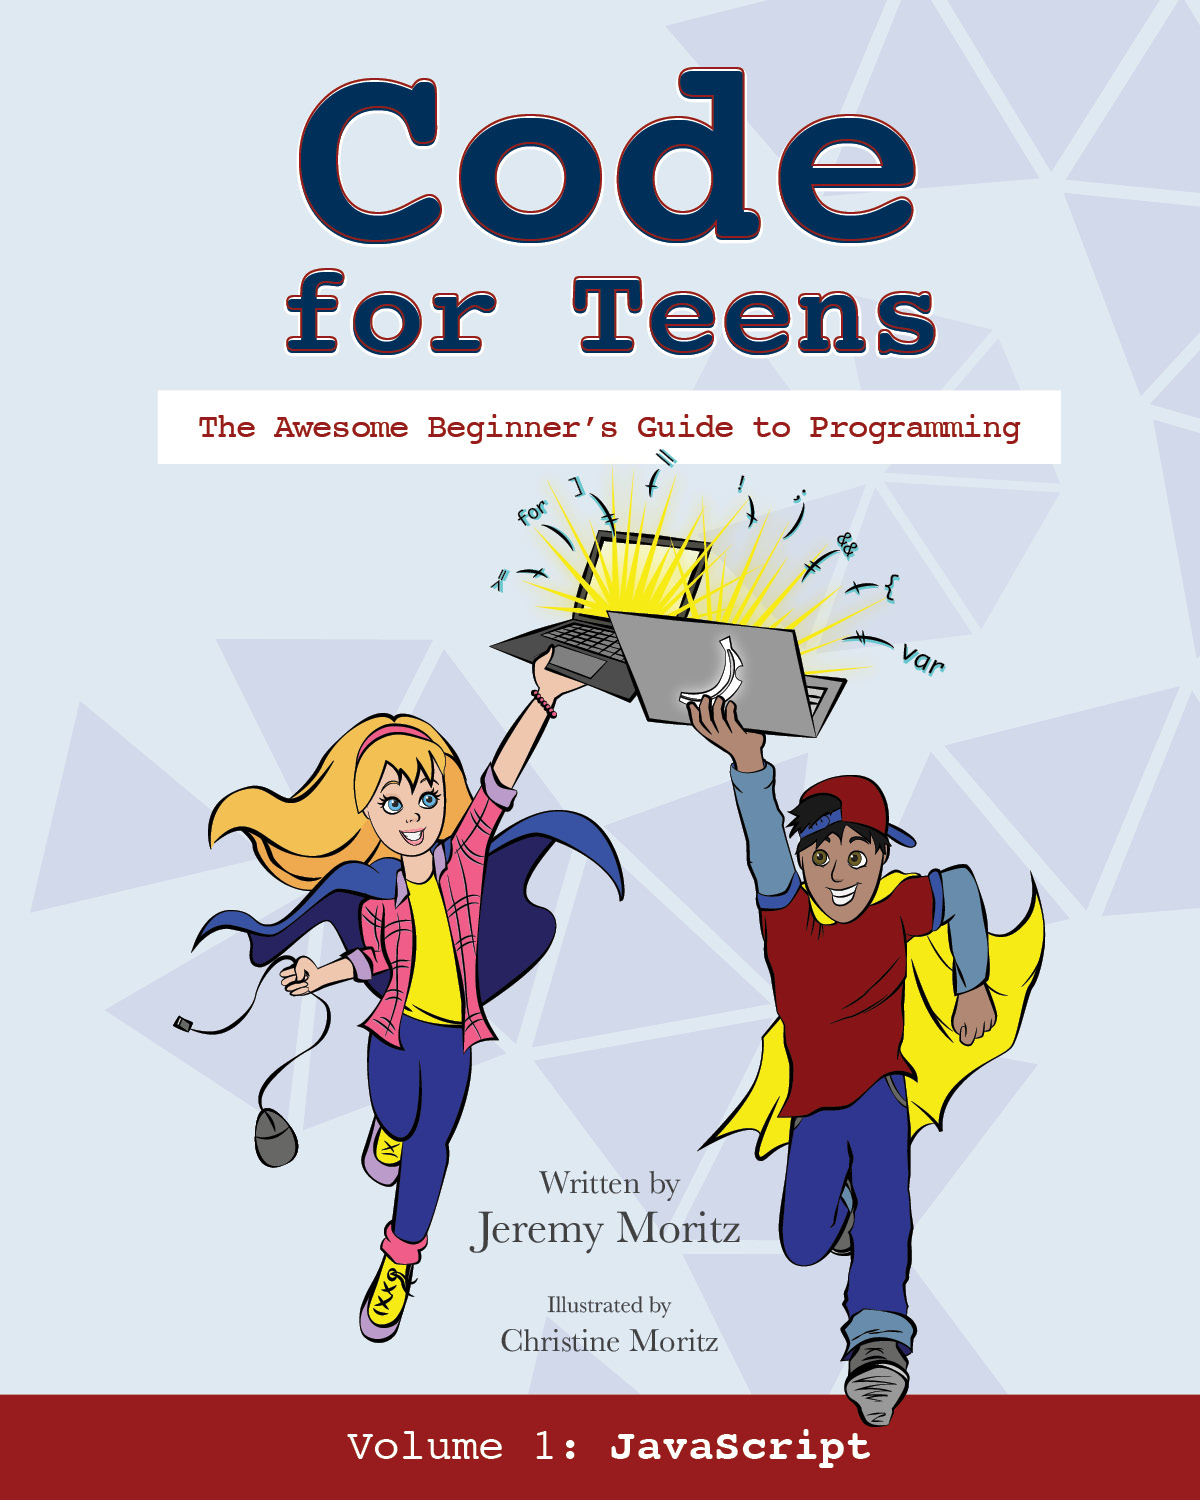 CodeForTeens_Amazon